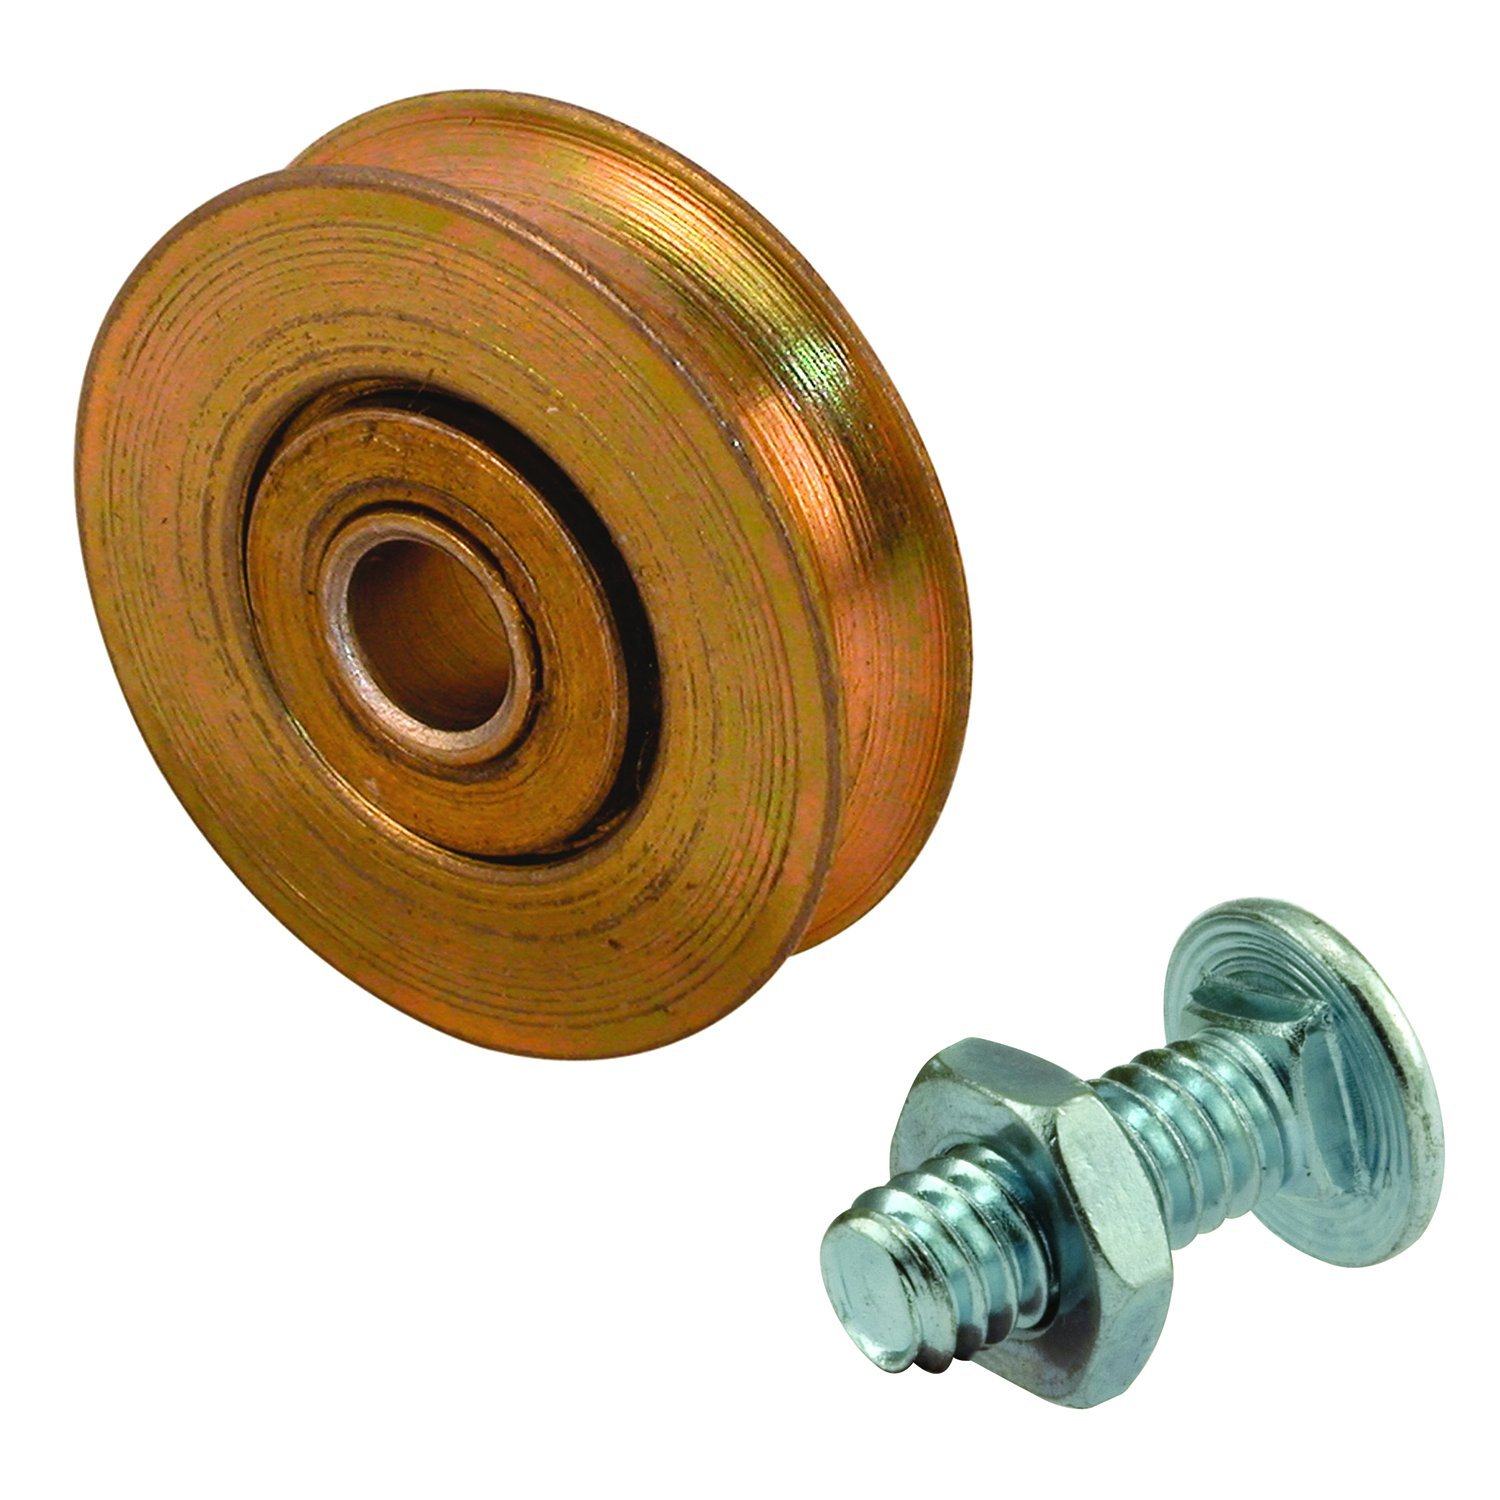 Prime-Line Products D 1502 Roller, 1-1/4 in. Outside Diameter, Steel w/Ball Bearings, Concave Edge Wheel